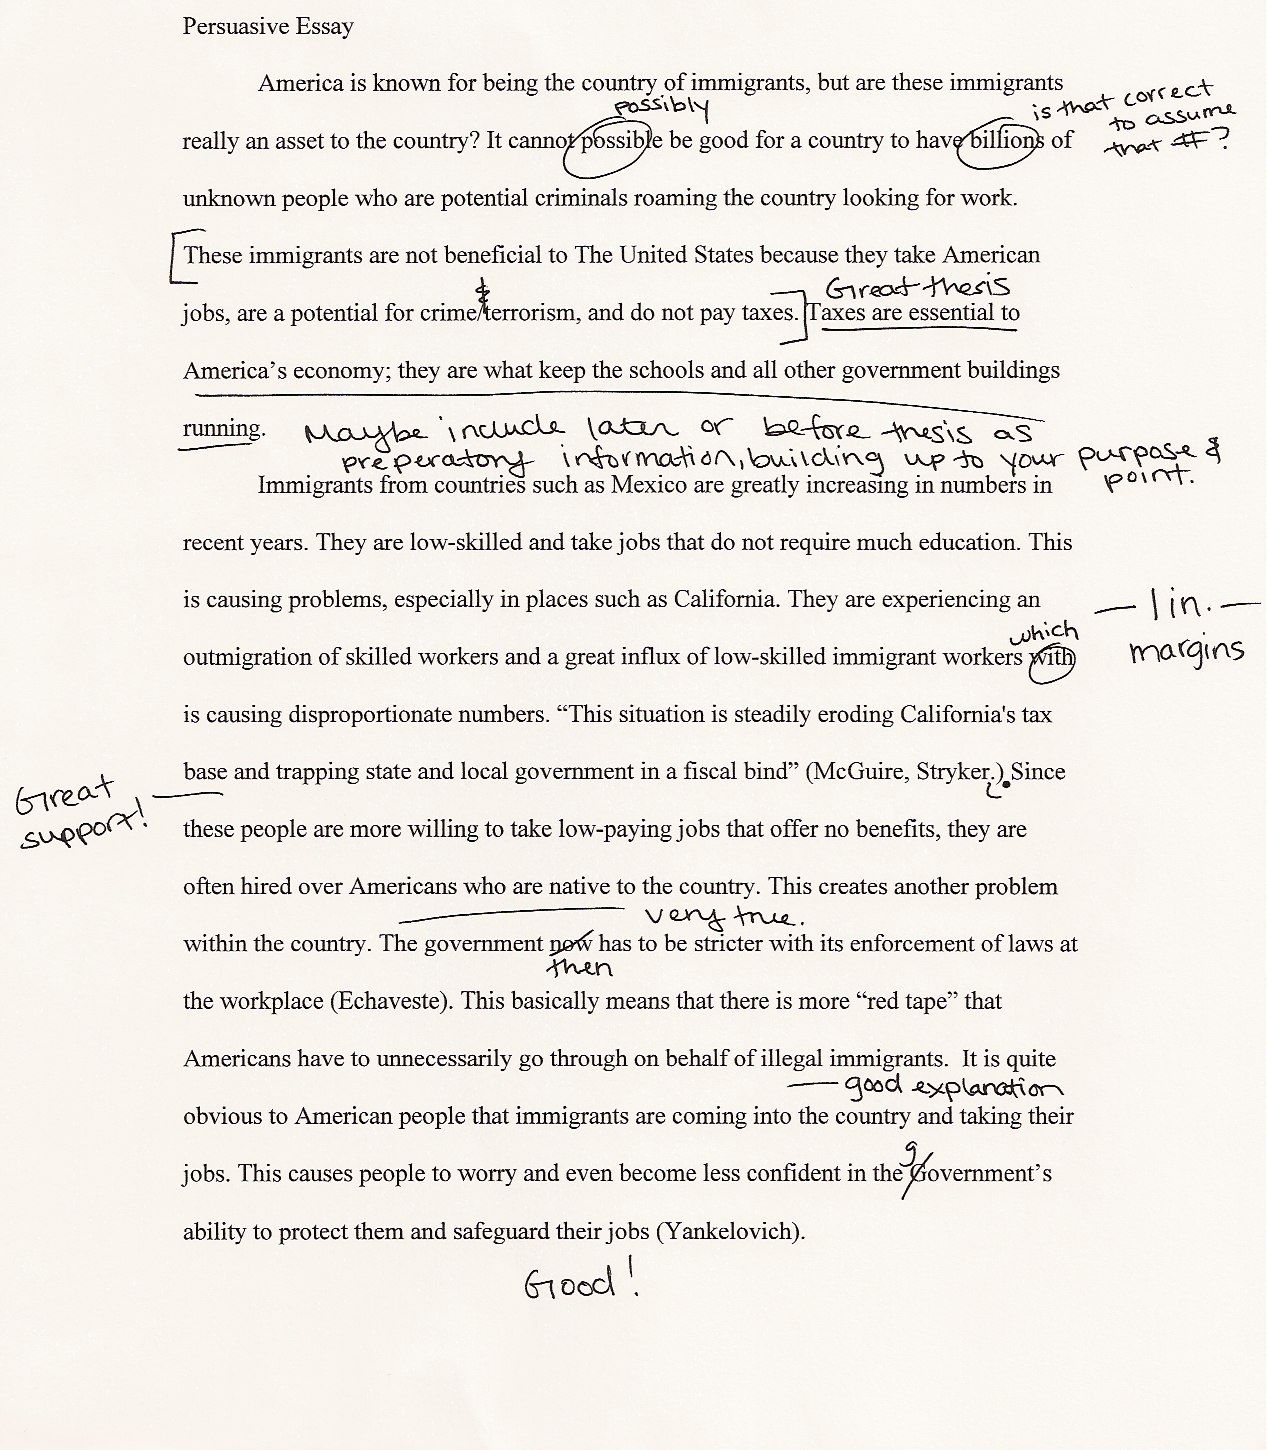 019 Good Topics For Argumentative Research Paper Frightening A Easy Papers Interesting Full